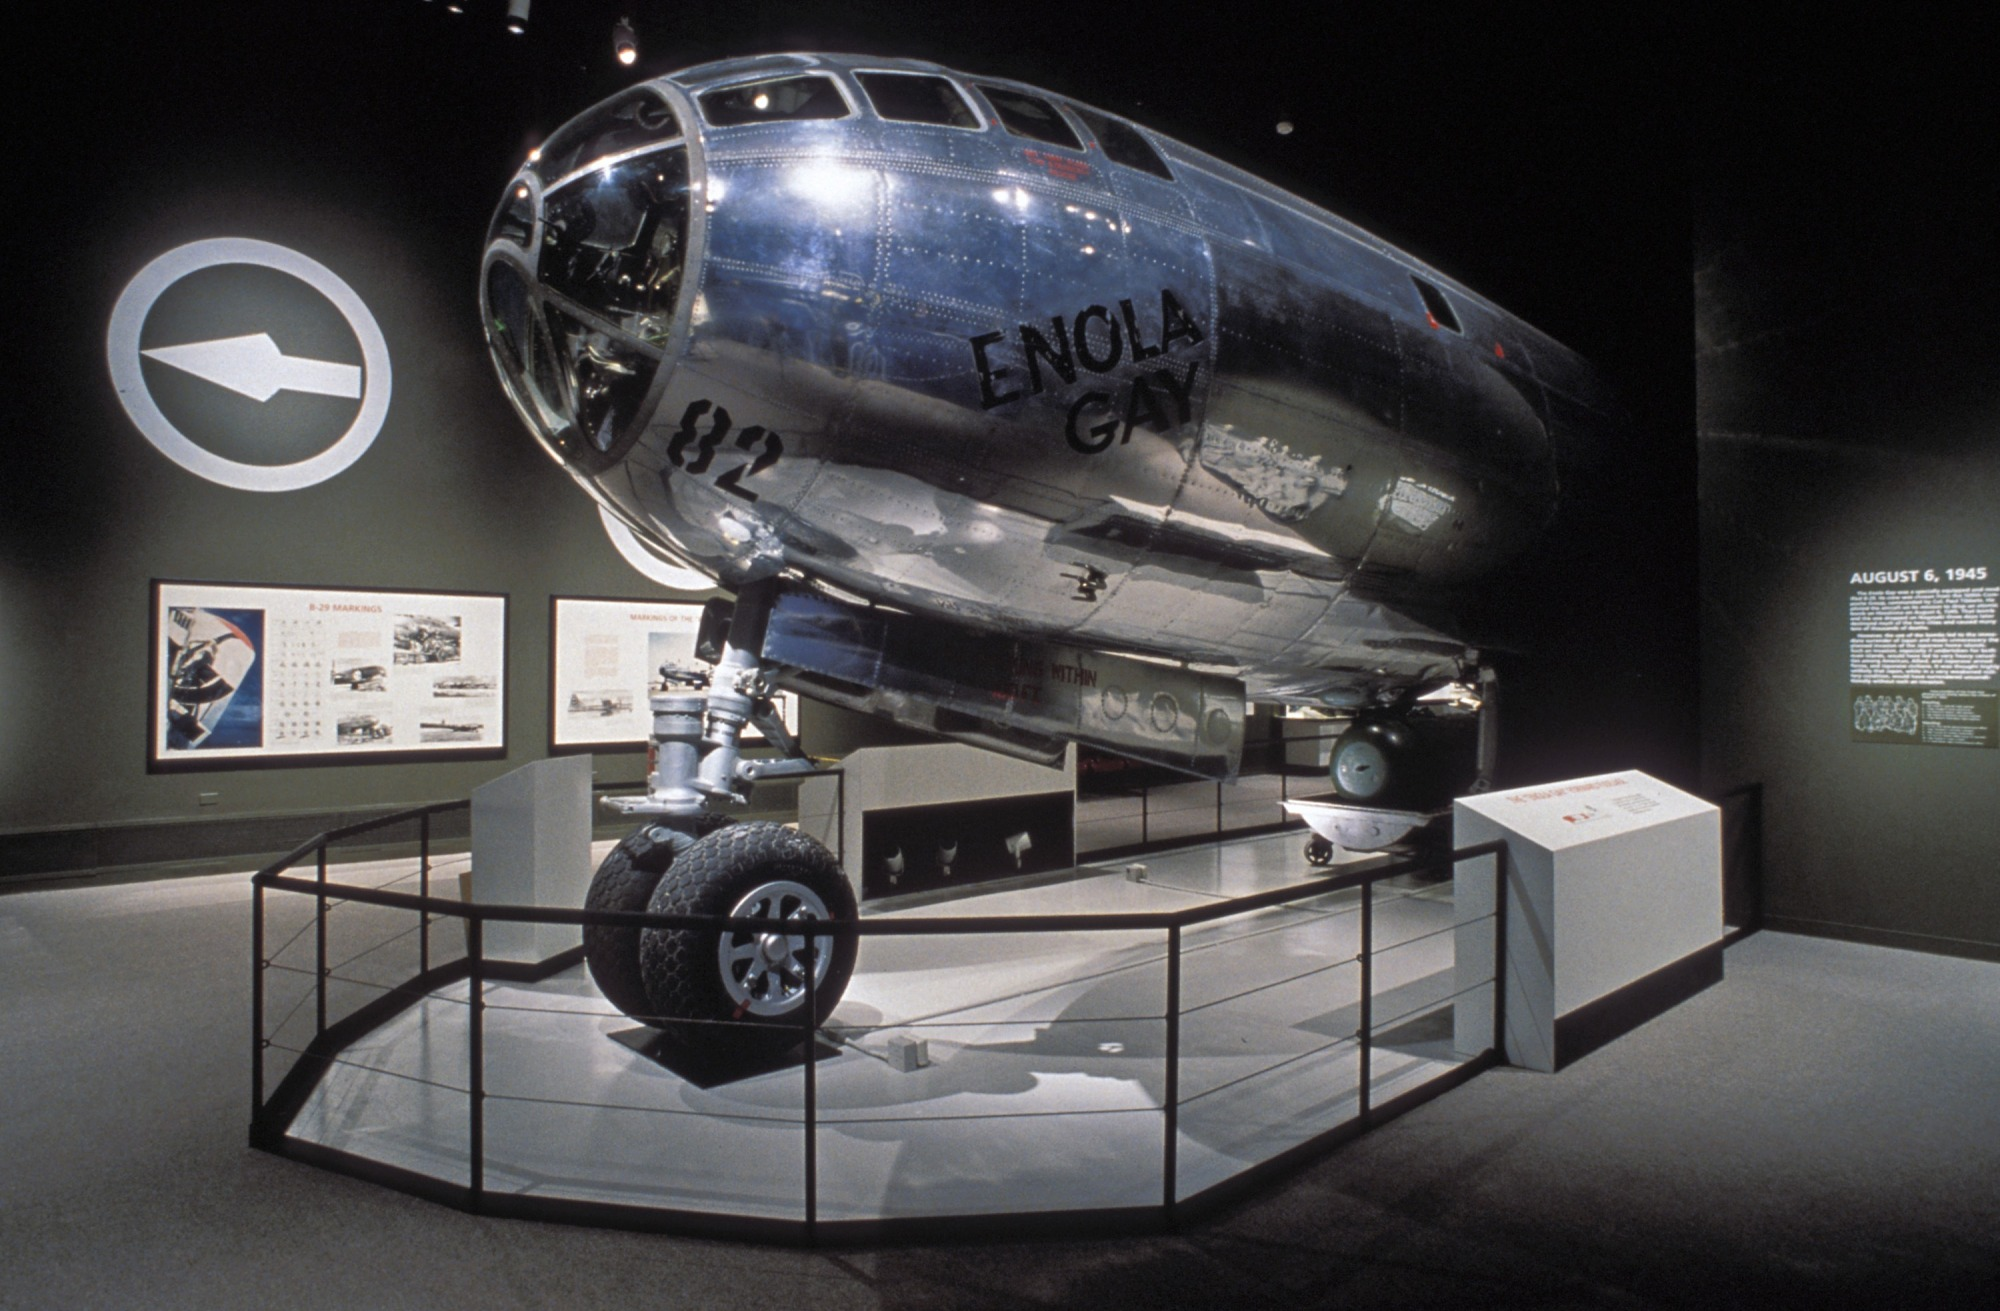 Jun 28 Enola Gay on Display